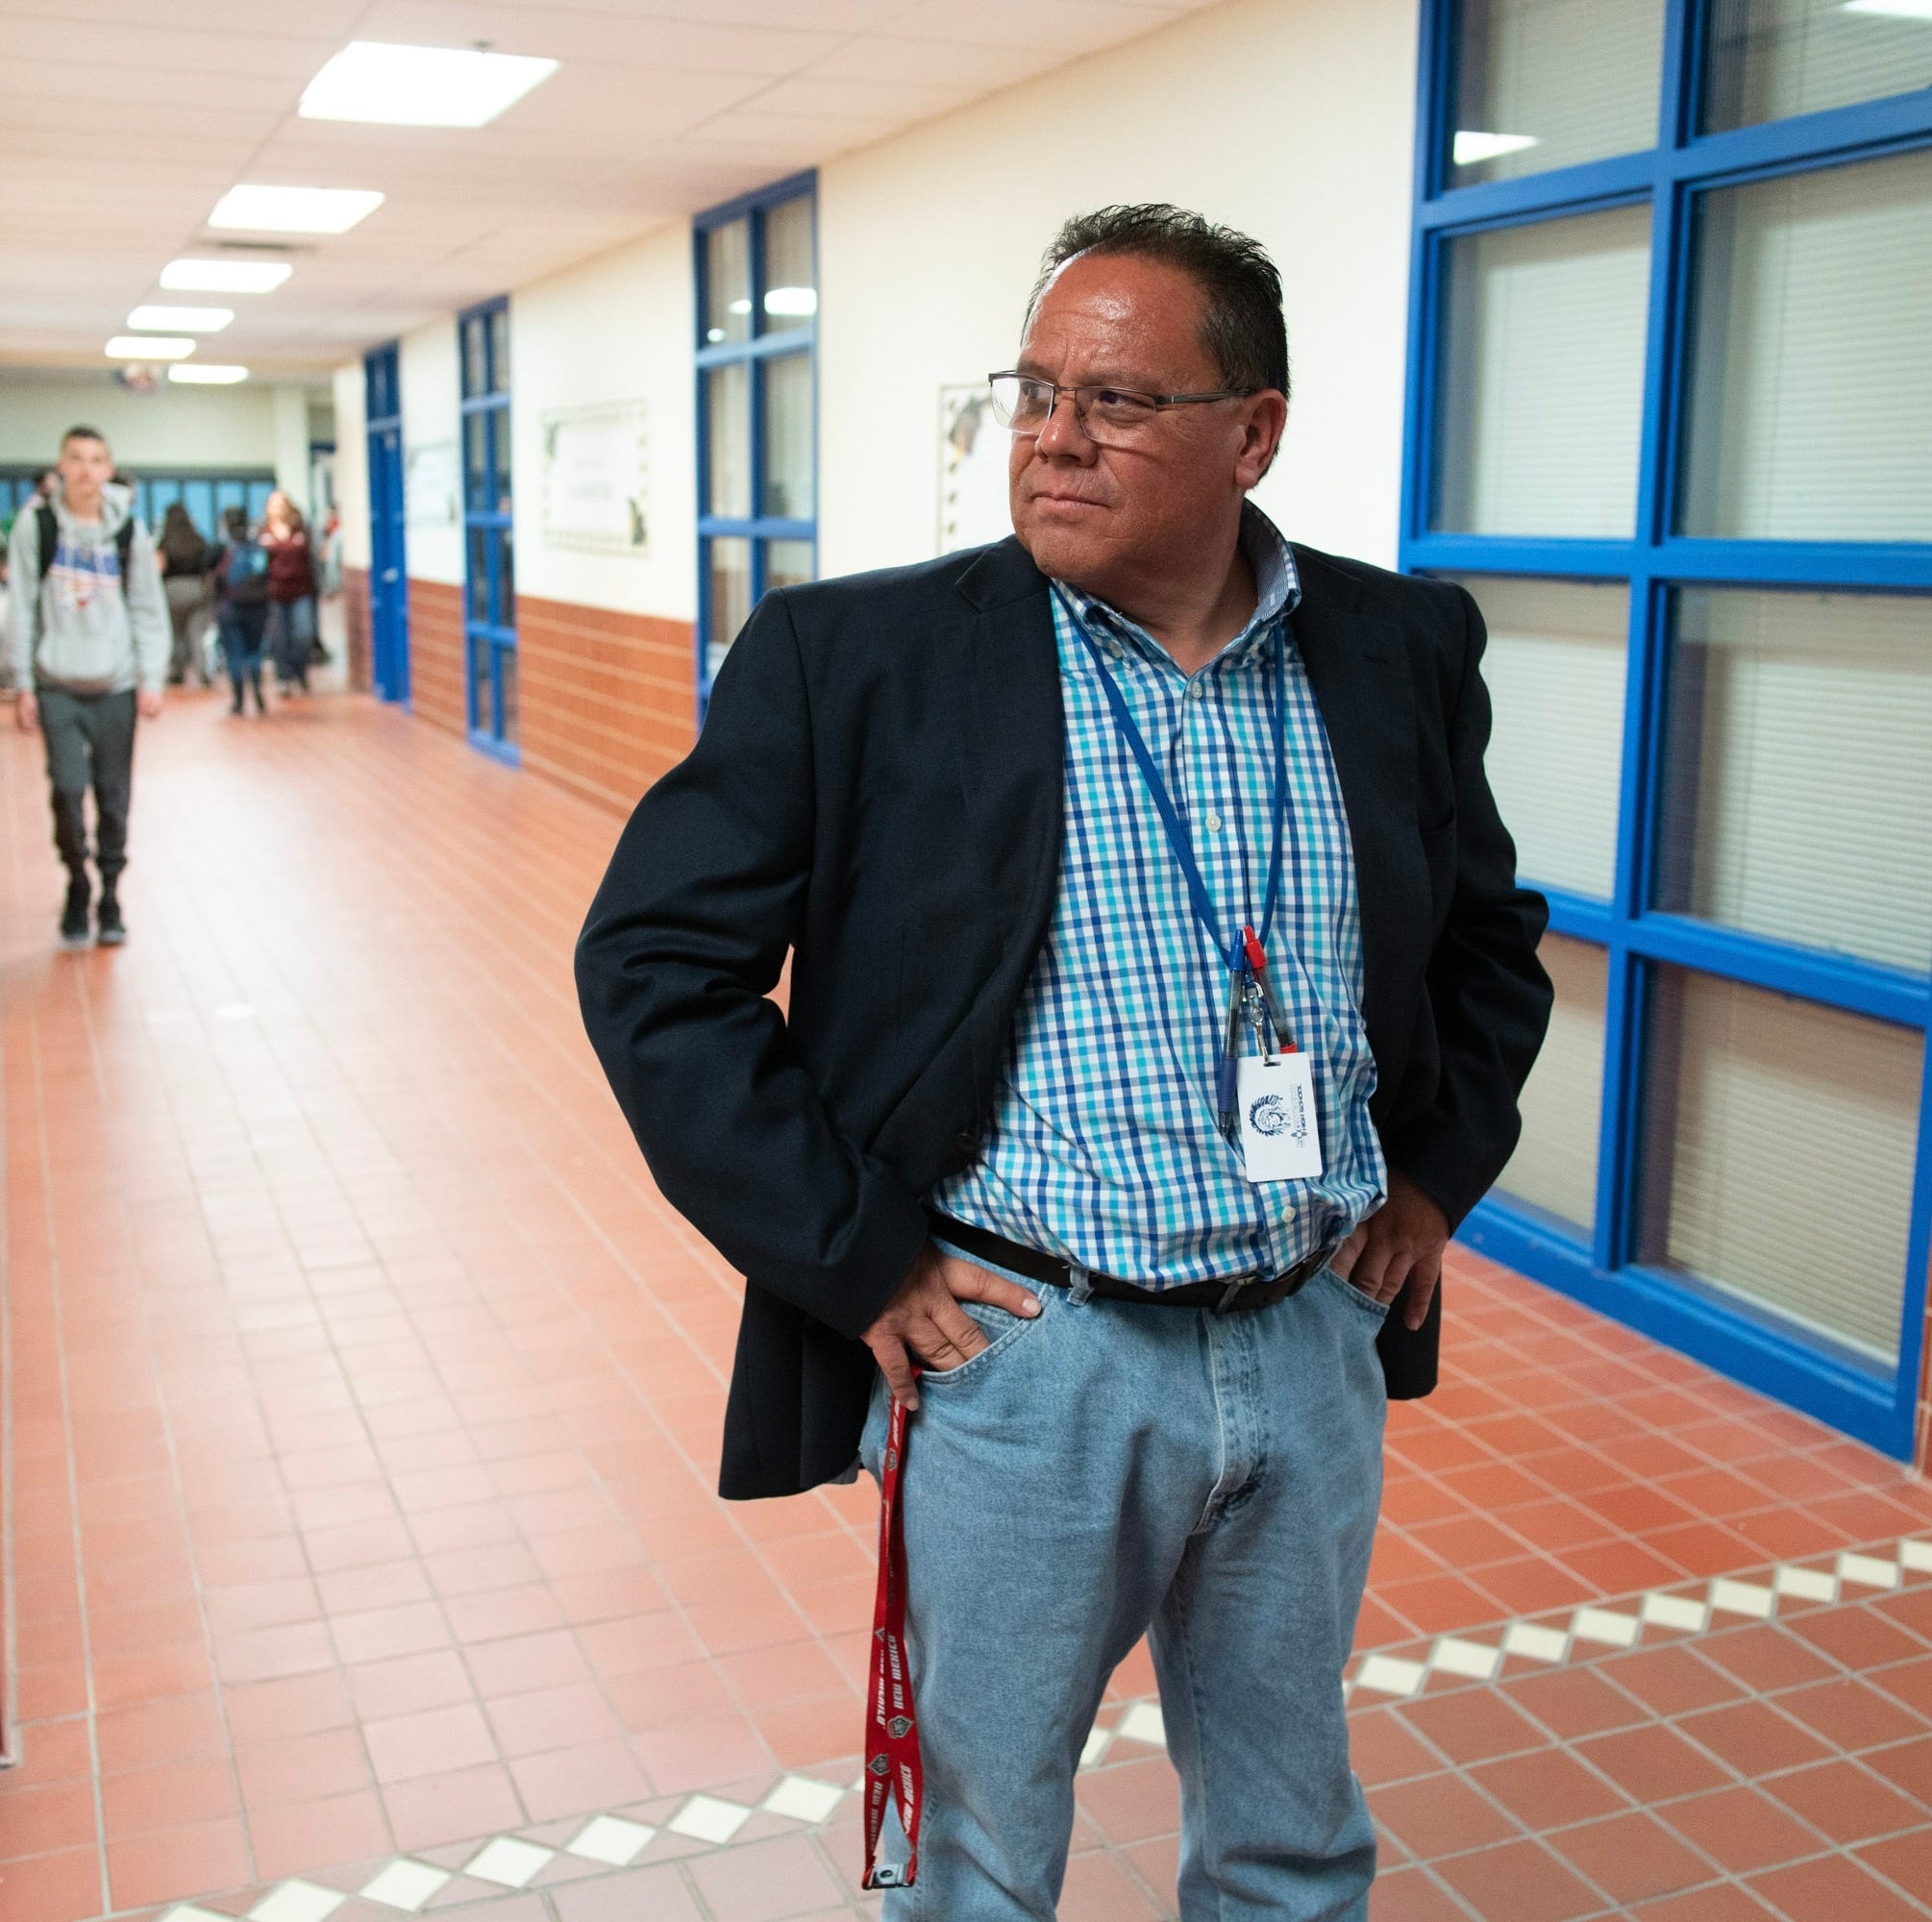 First, aid: If students in Socorro are going to succeed, they need help in & out of class